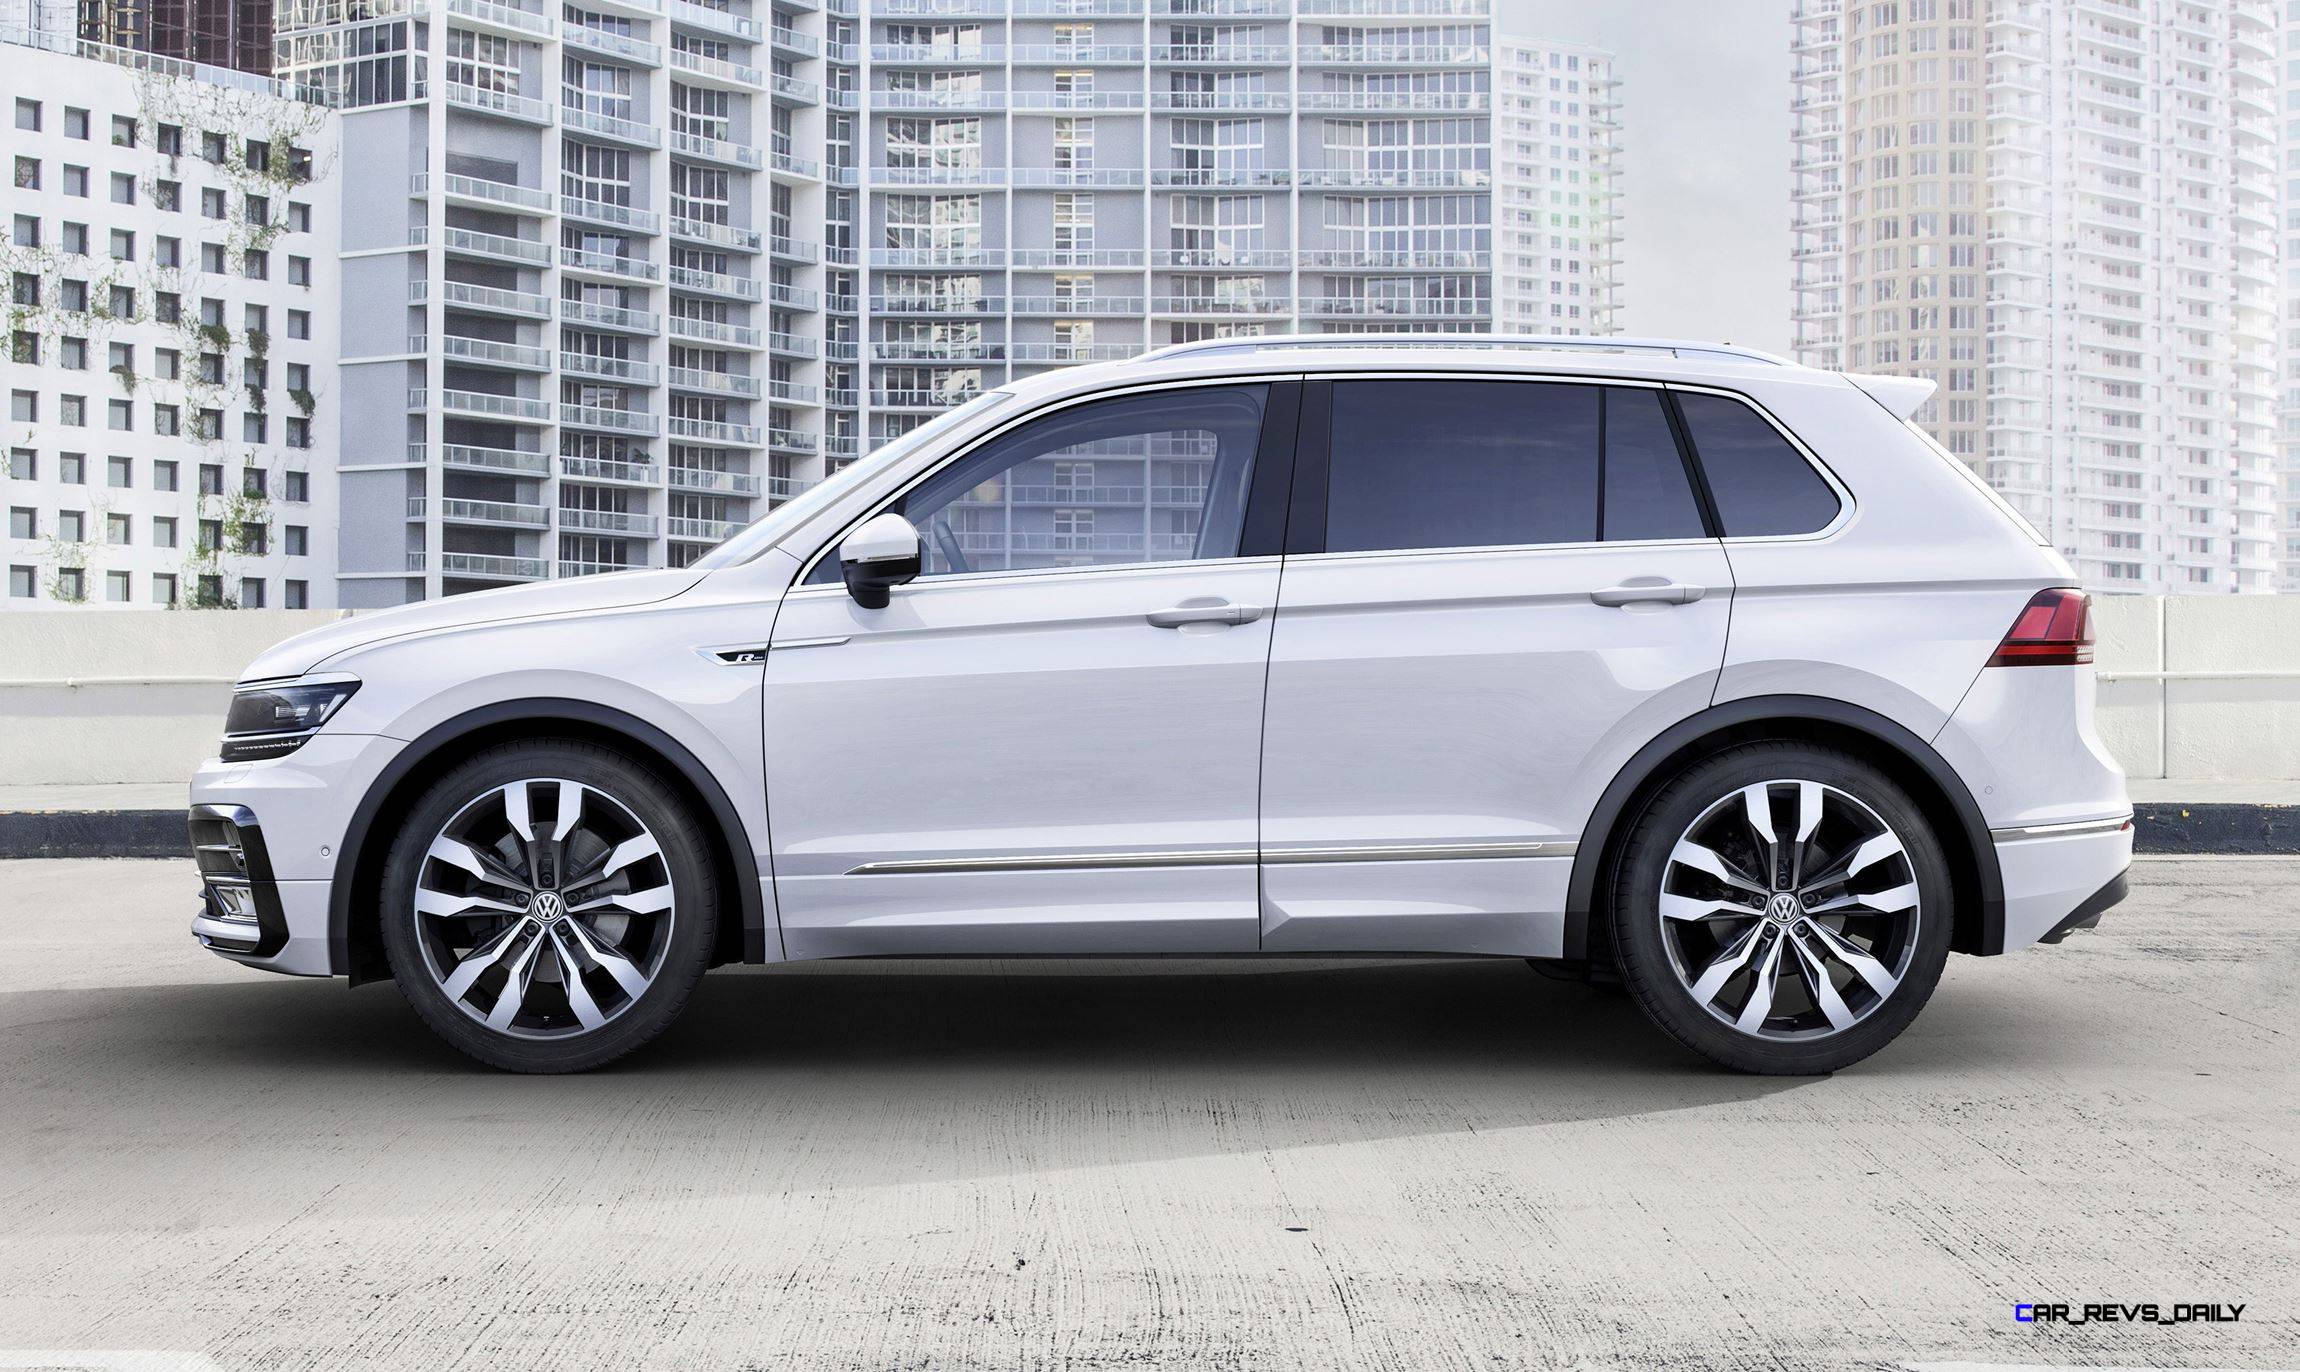 2017 Volkswagen TIGUAN Is Truly All New in R-Line or Standard Style ...